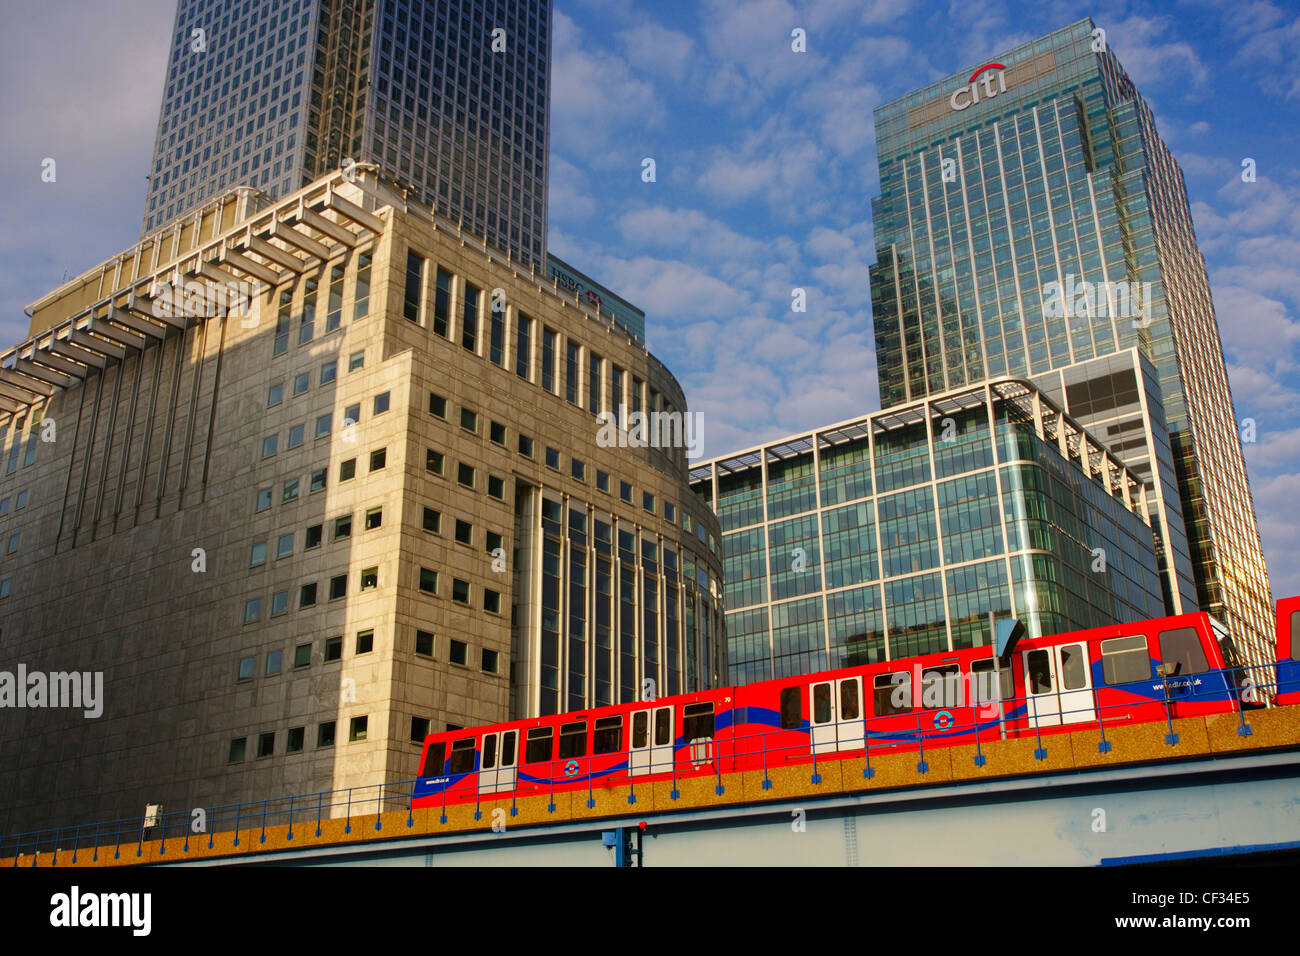 A Docklands Light Railway (DLR) train travelling past the skyscrapers and buildings at Canary Wharf. - Stock Image